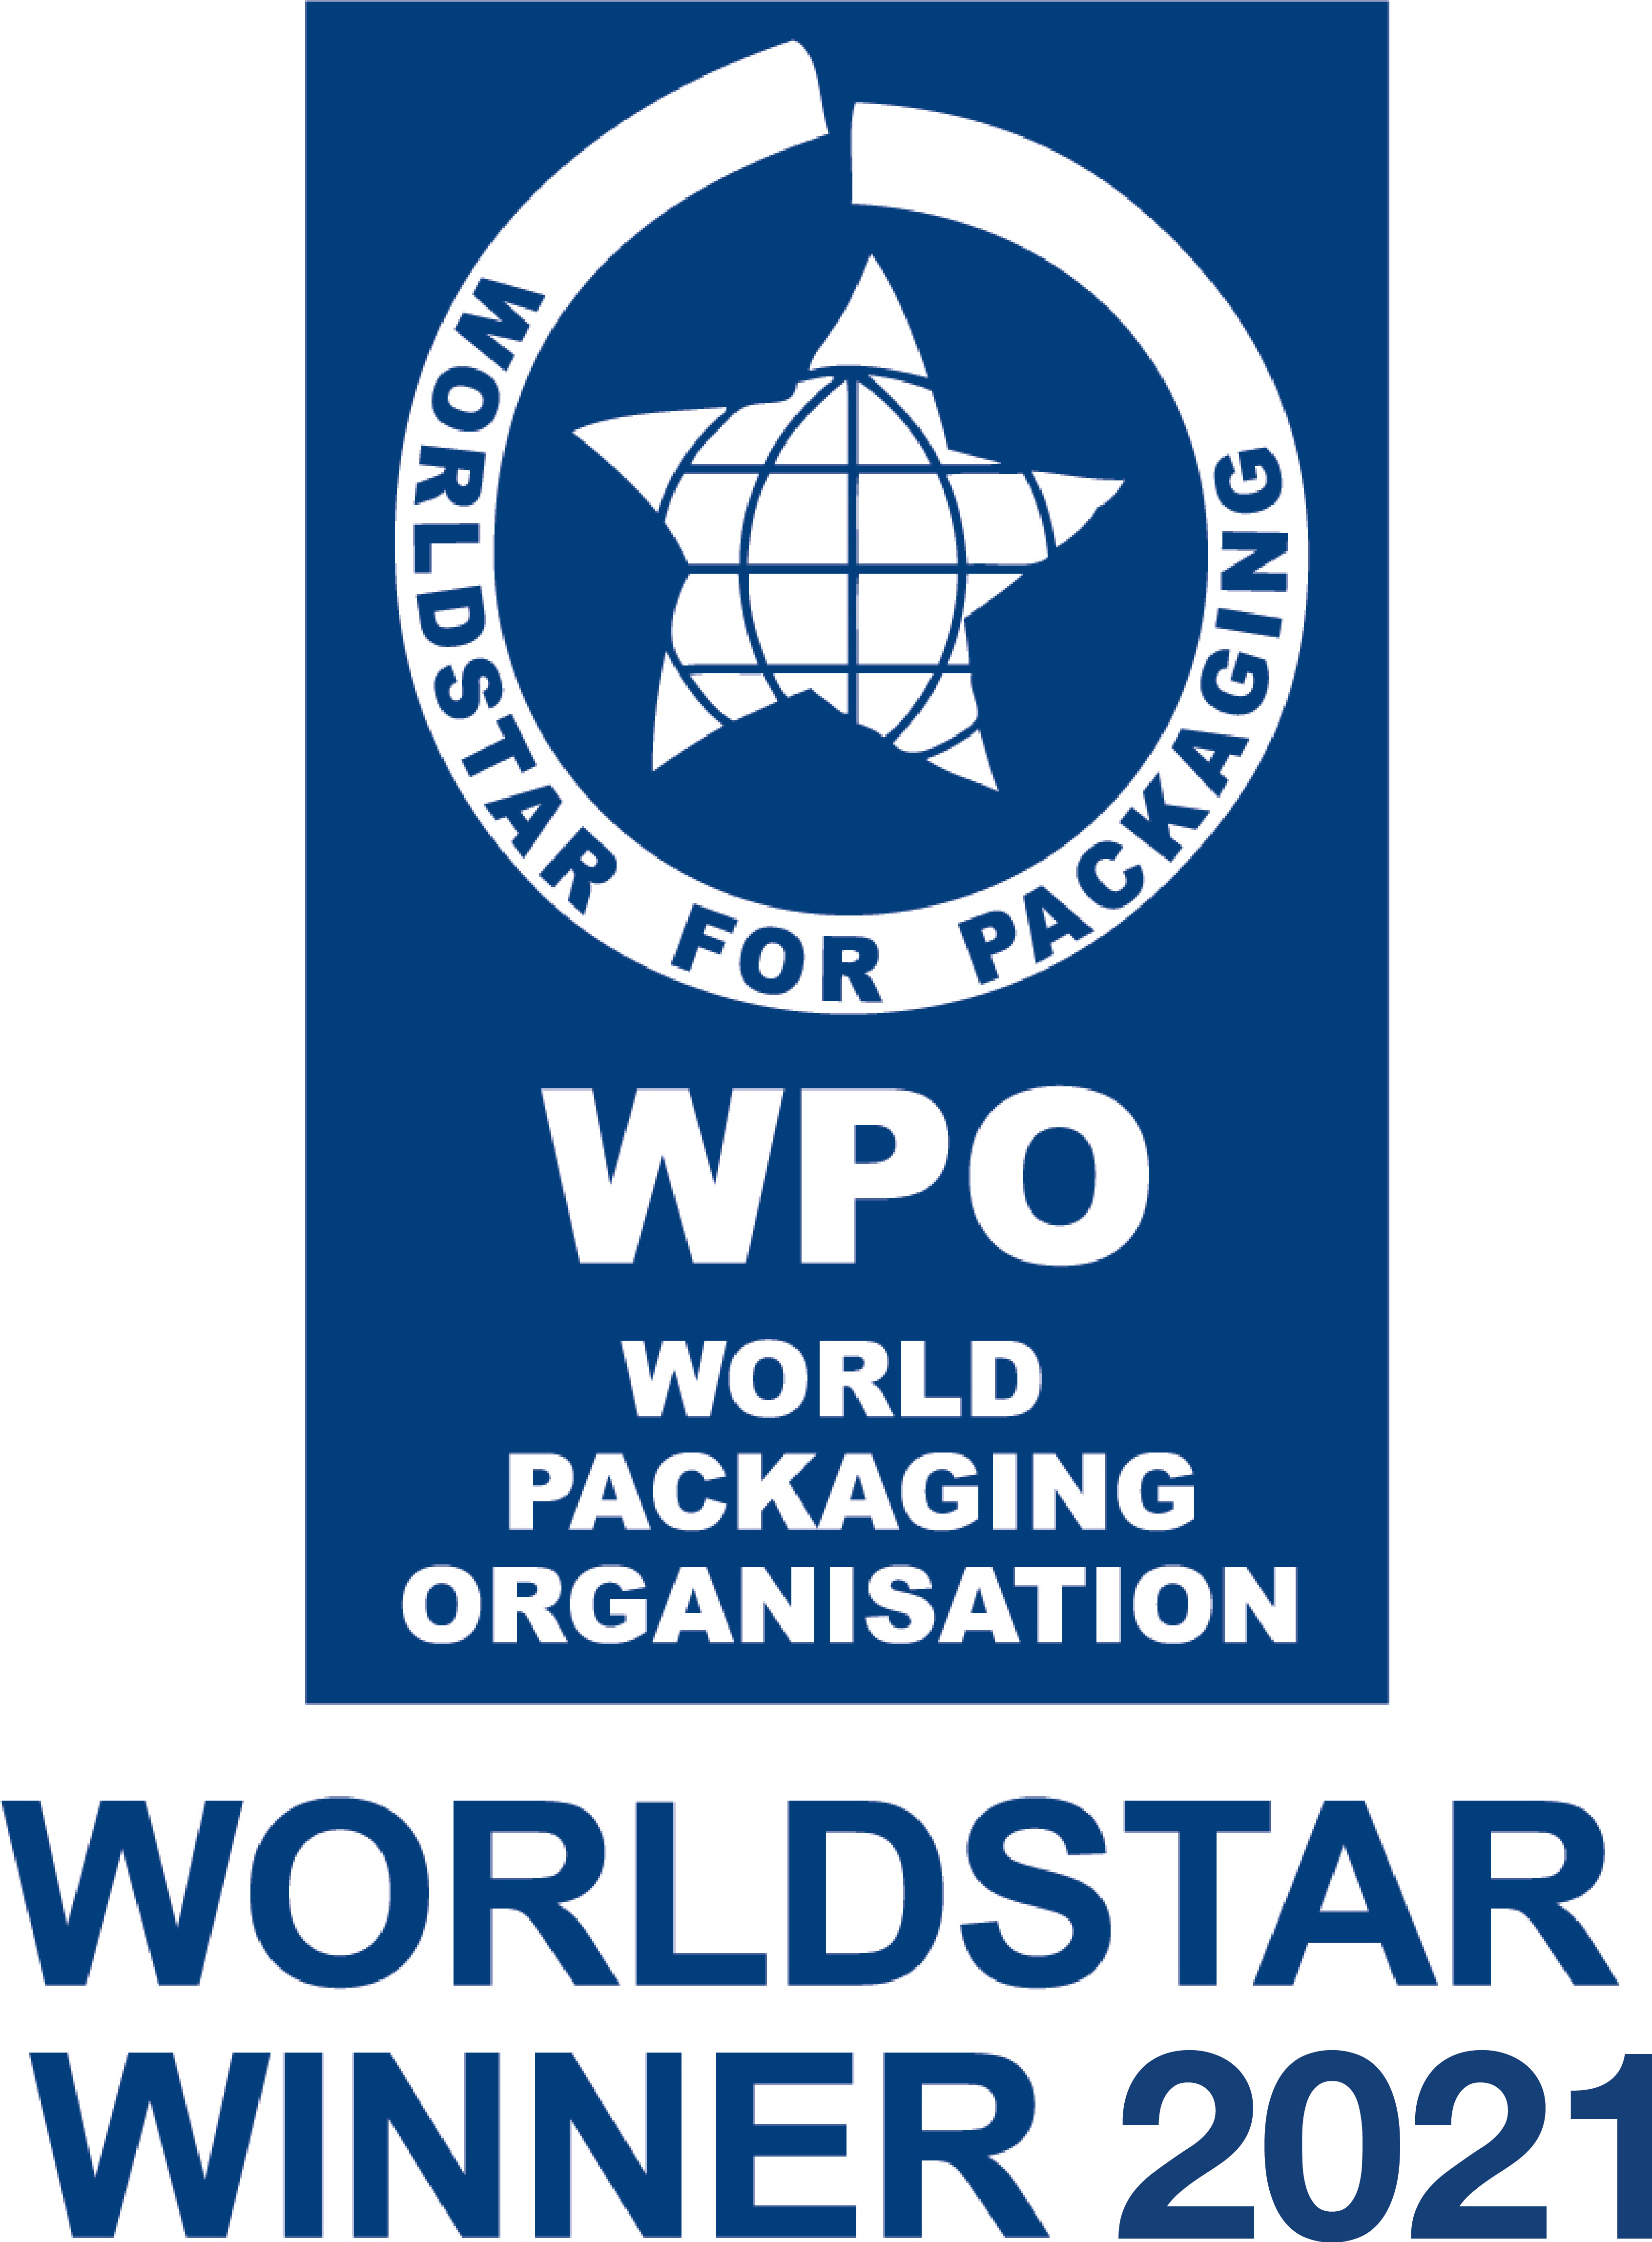 Kyocera Document Solutions Receives WorldStar Award 2021 from World Packaging Organization.